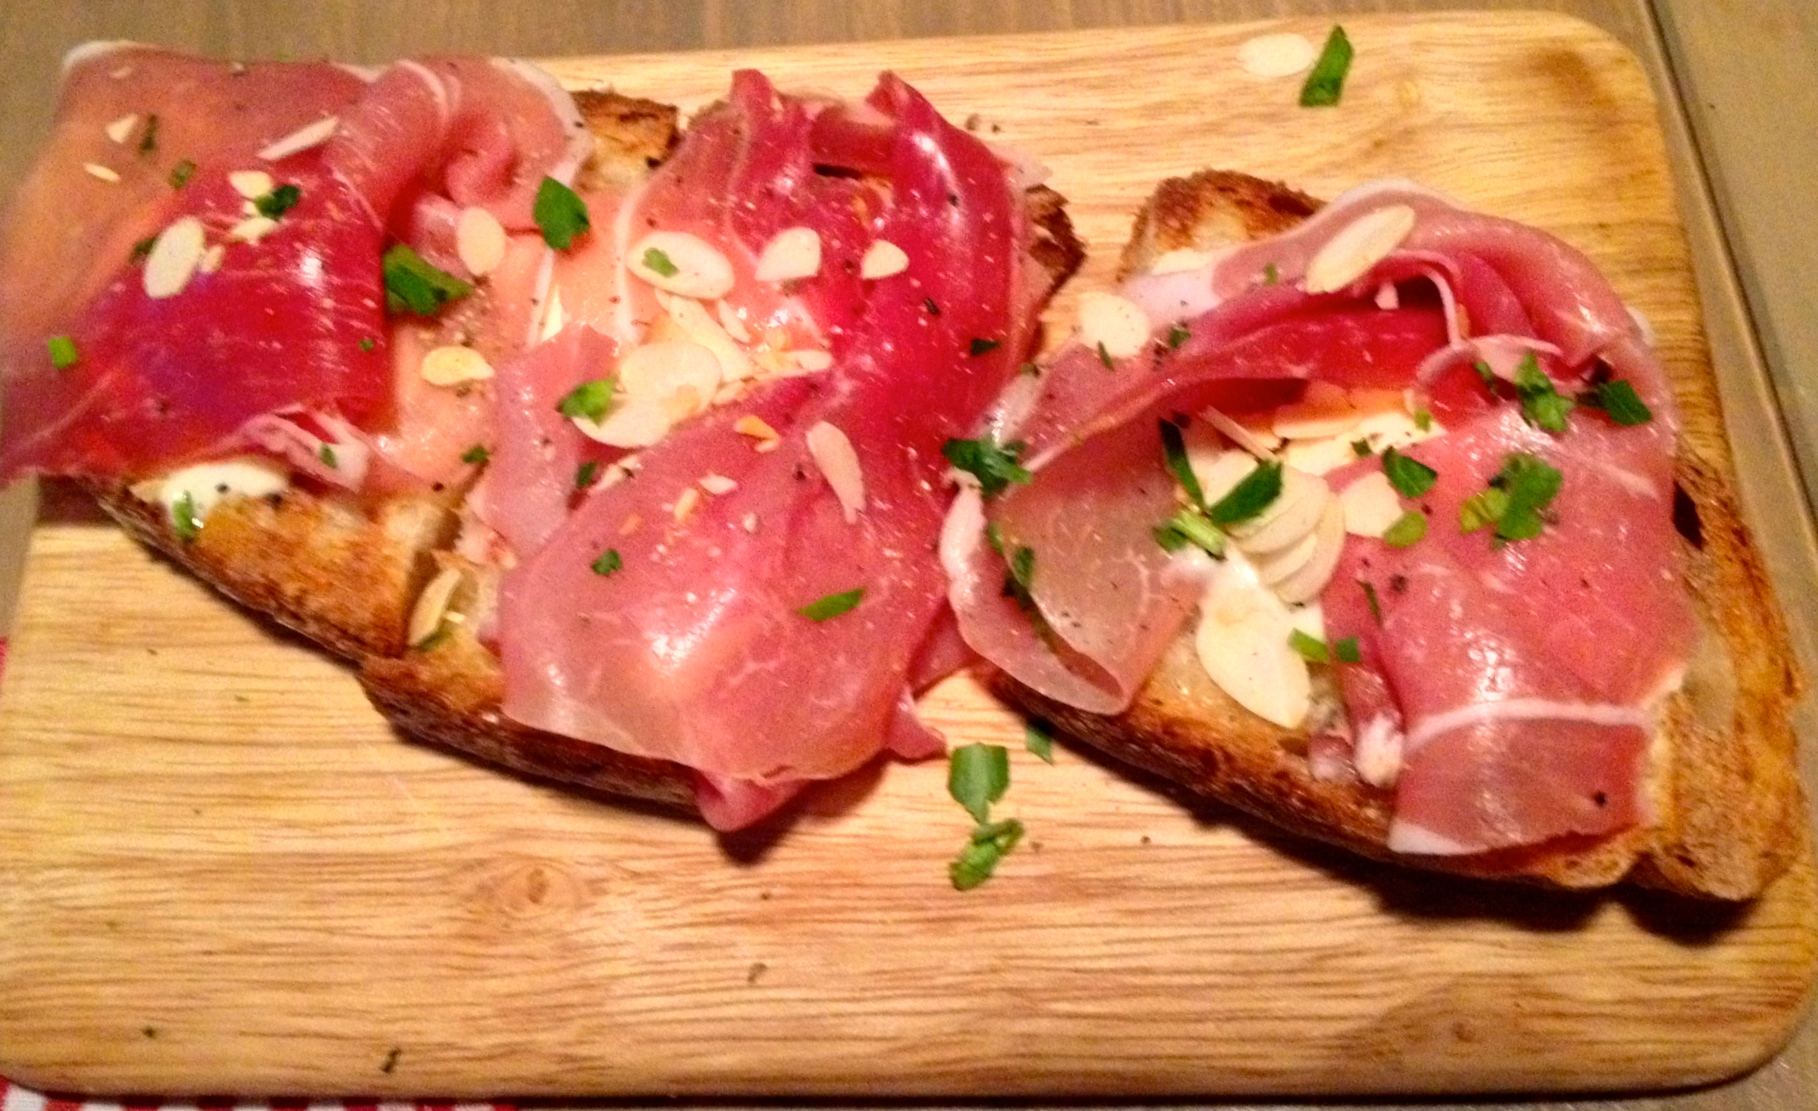 Toasted bread with Serrano ham, garlic aioli, and roasted almonds